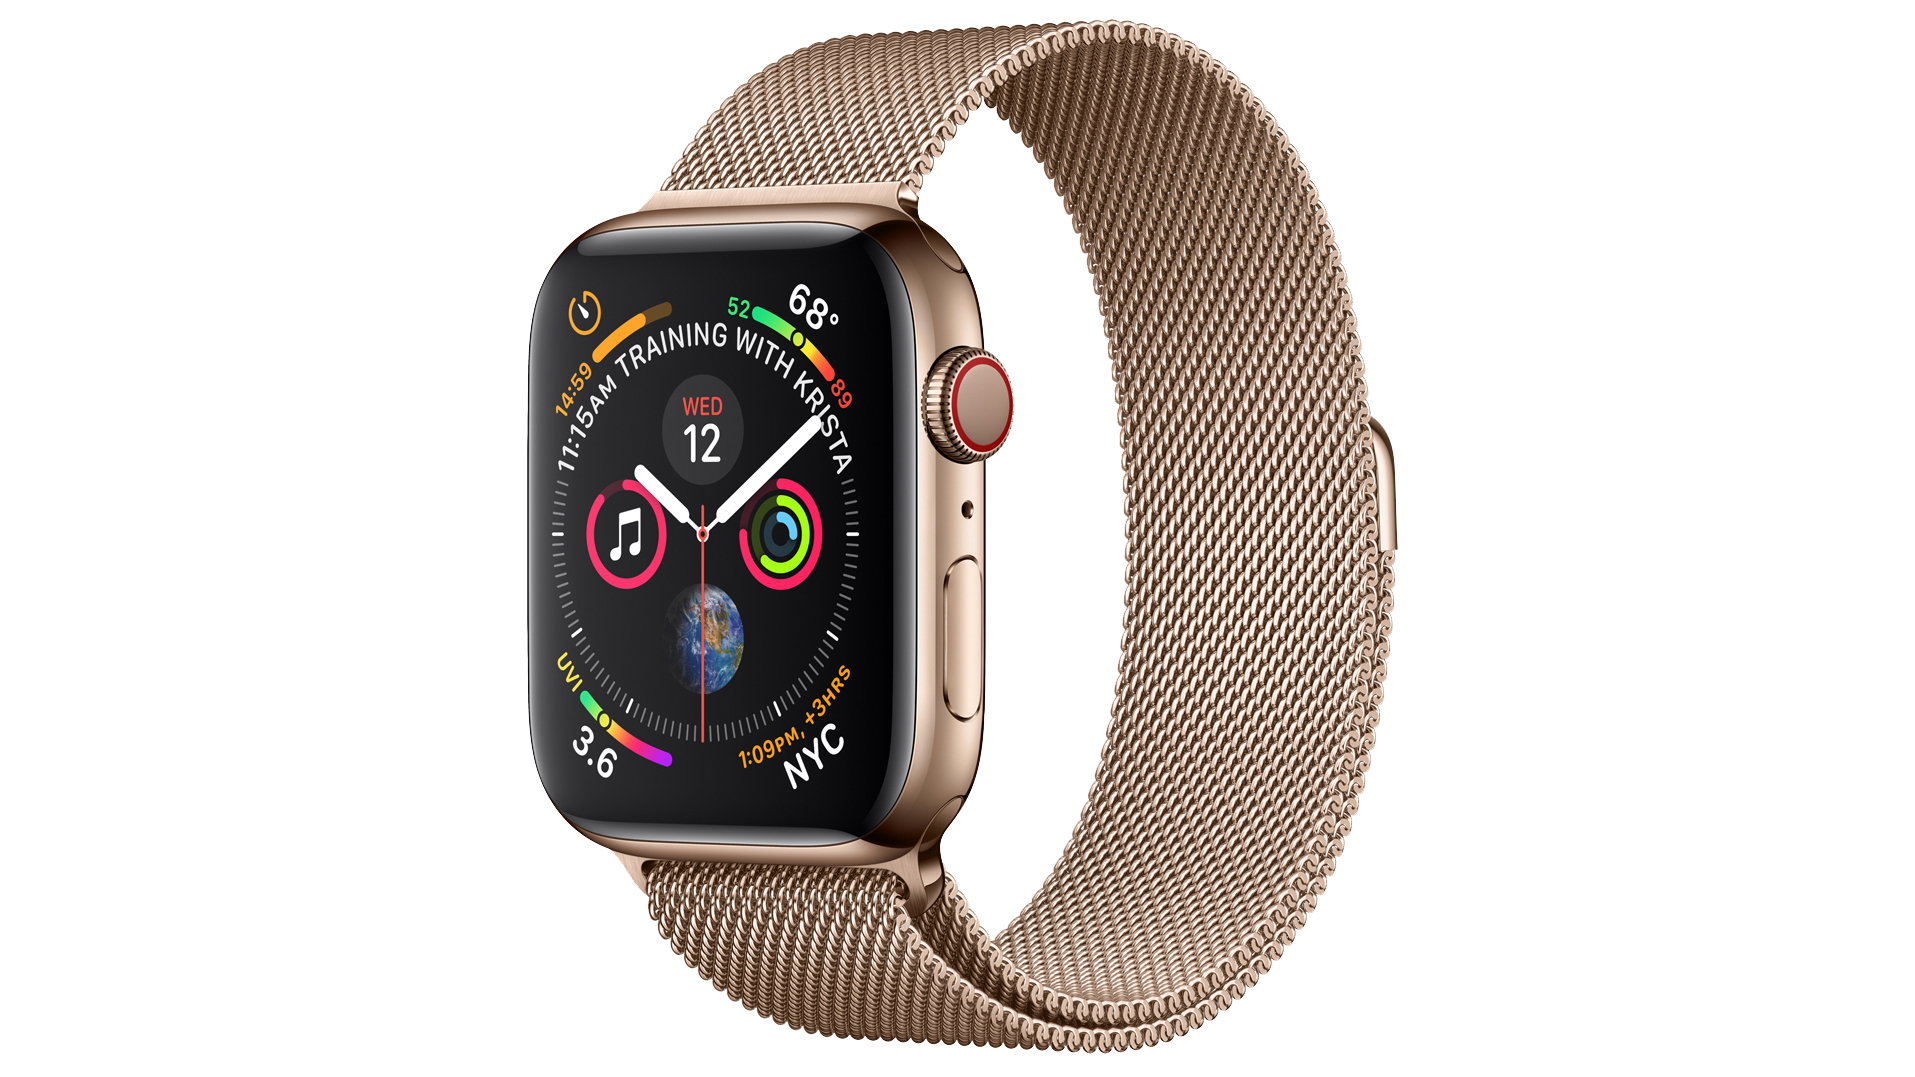 6c776b3ce Apple Watch Series 4 review: the best smartwatch takes a leap forward | T3